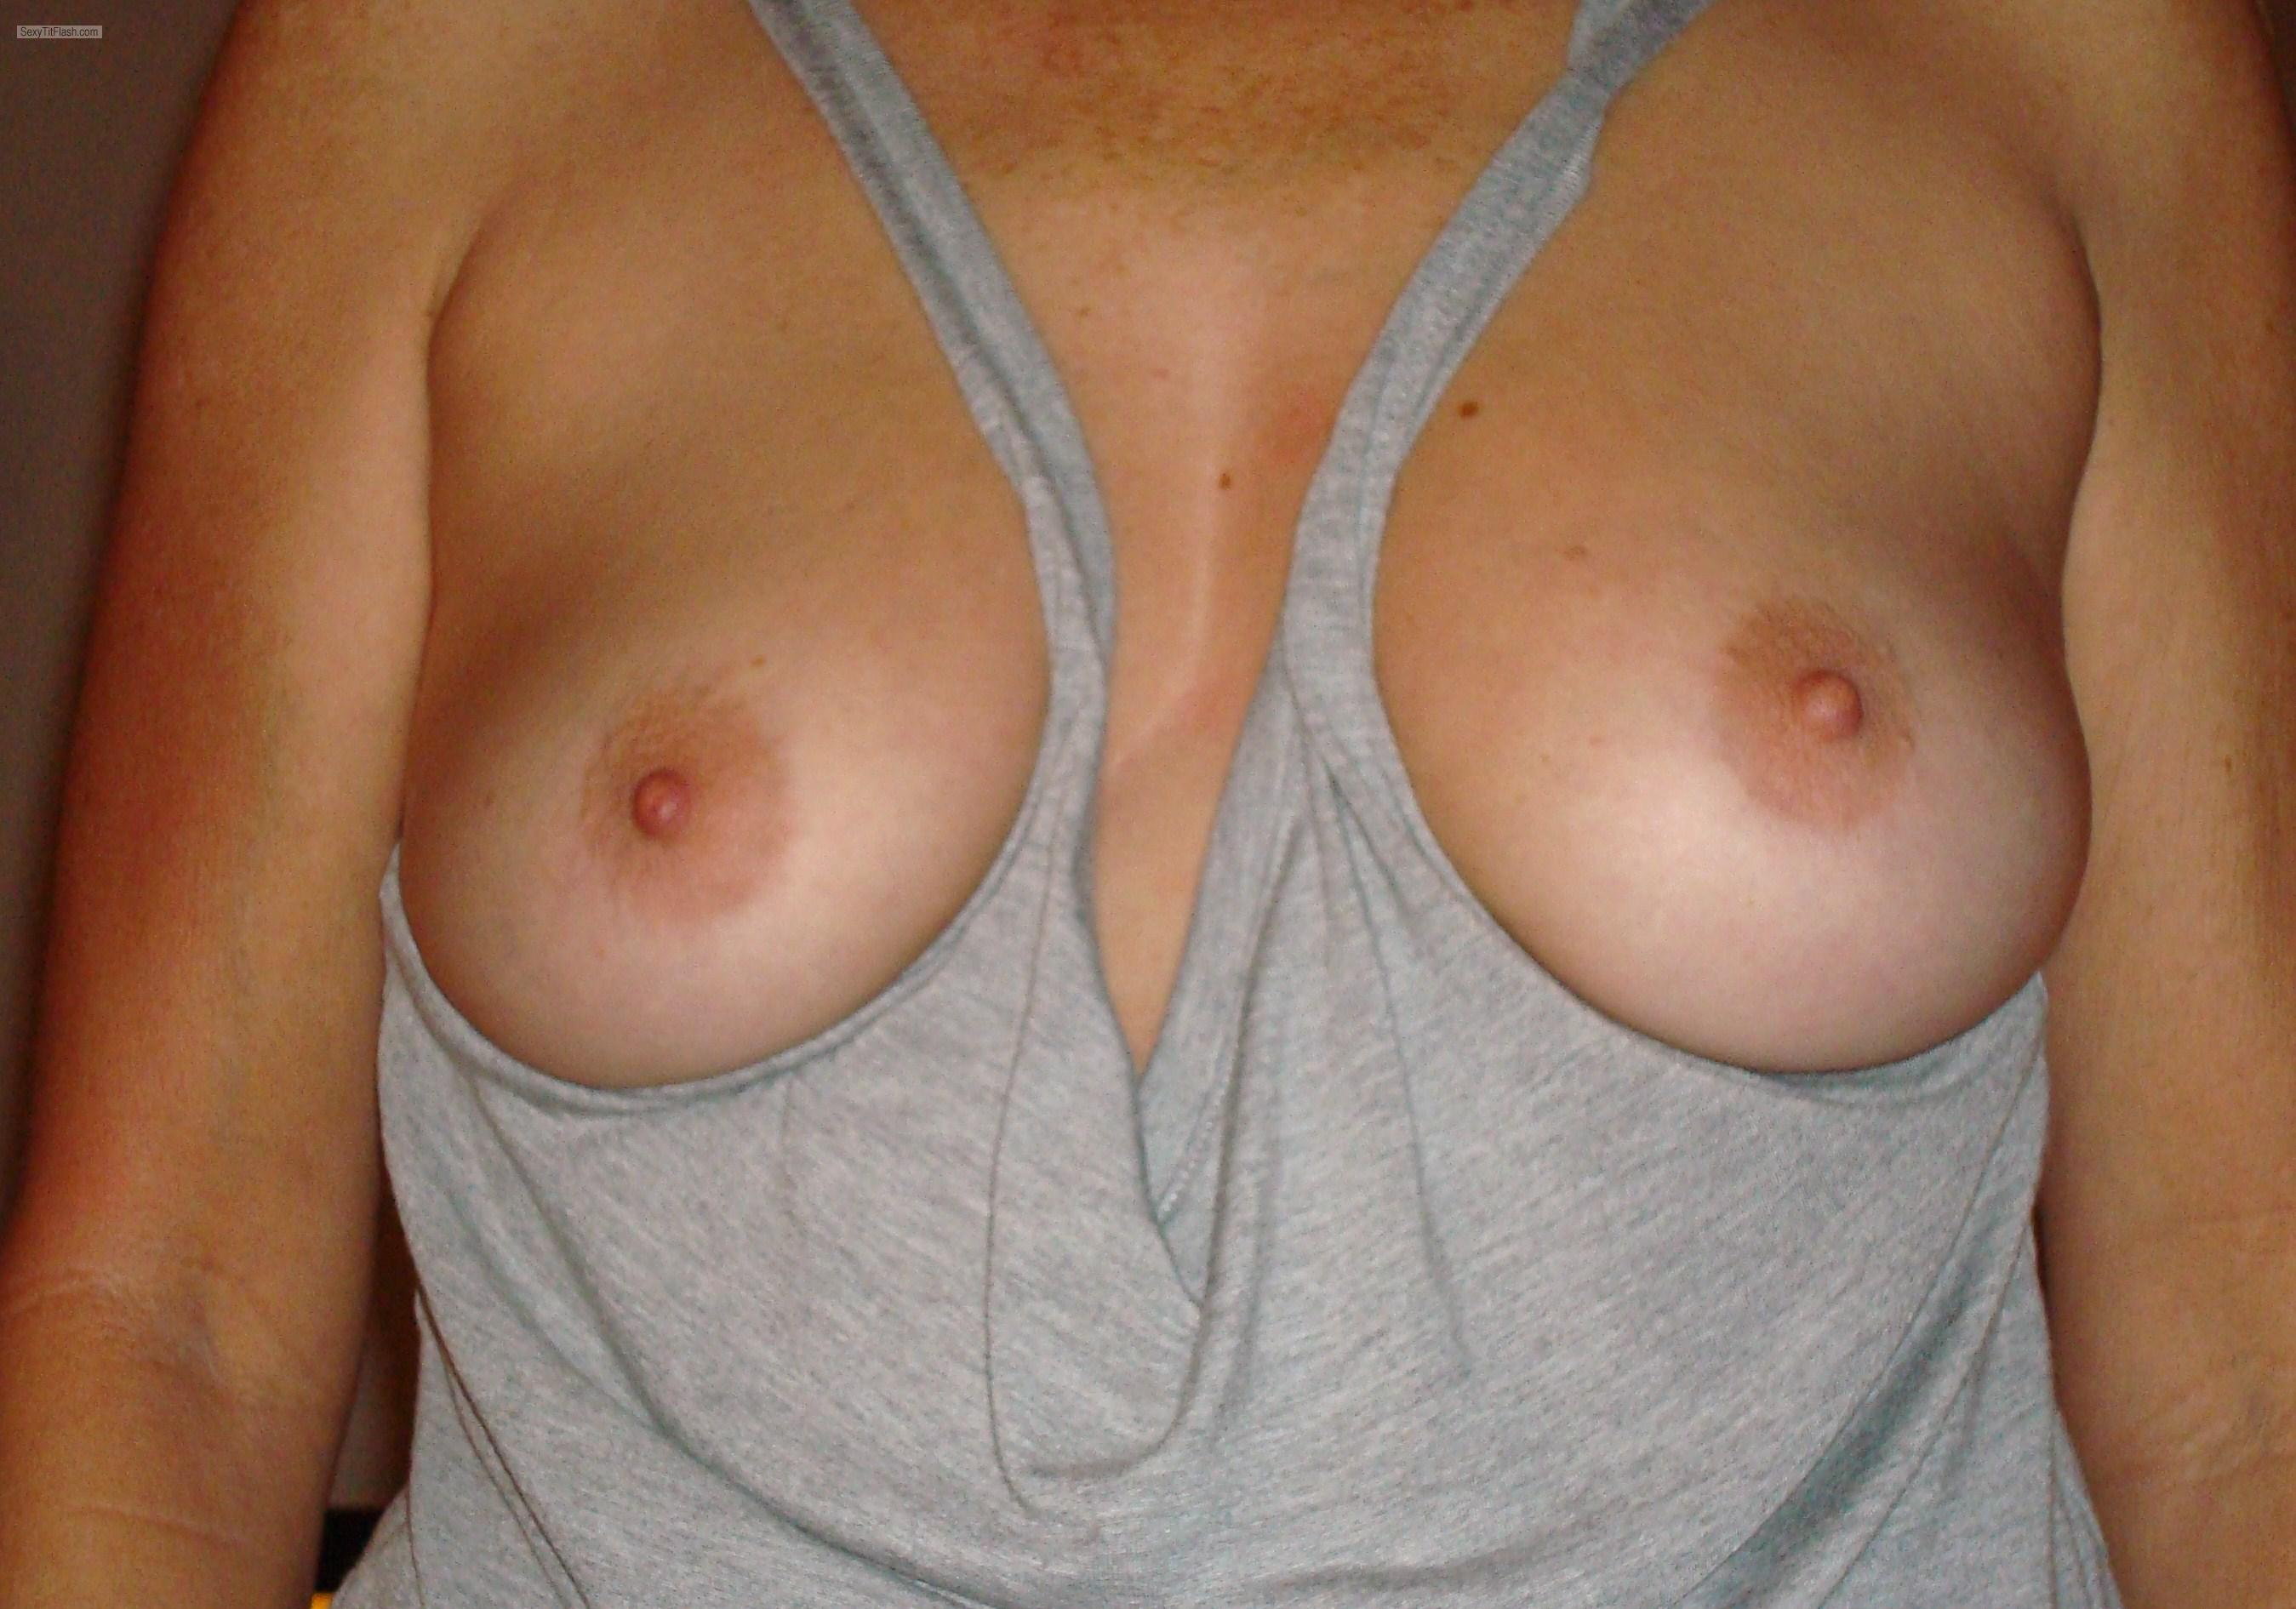 Tit Flash: Wife's Medium Tits - Brenda from United States